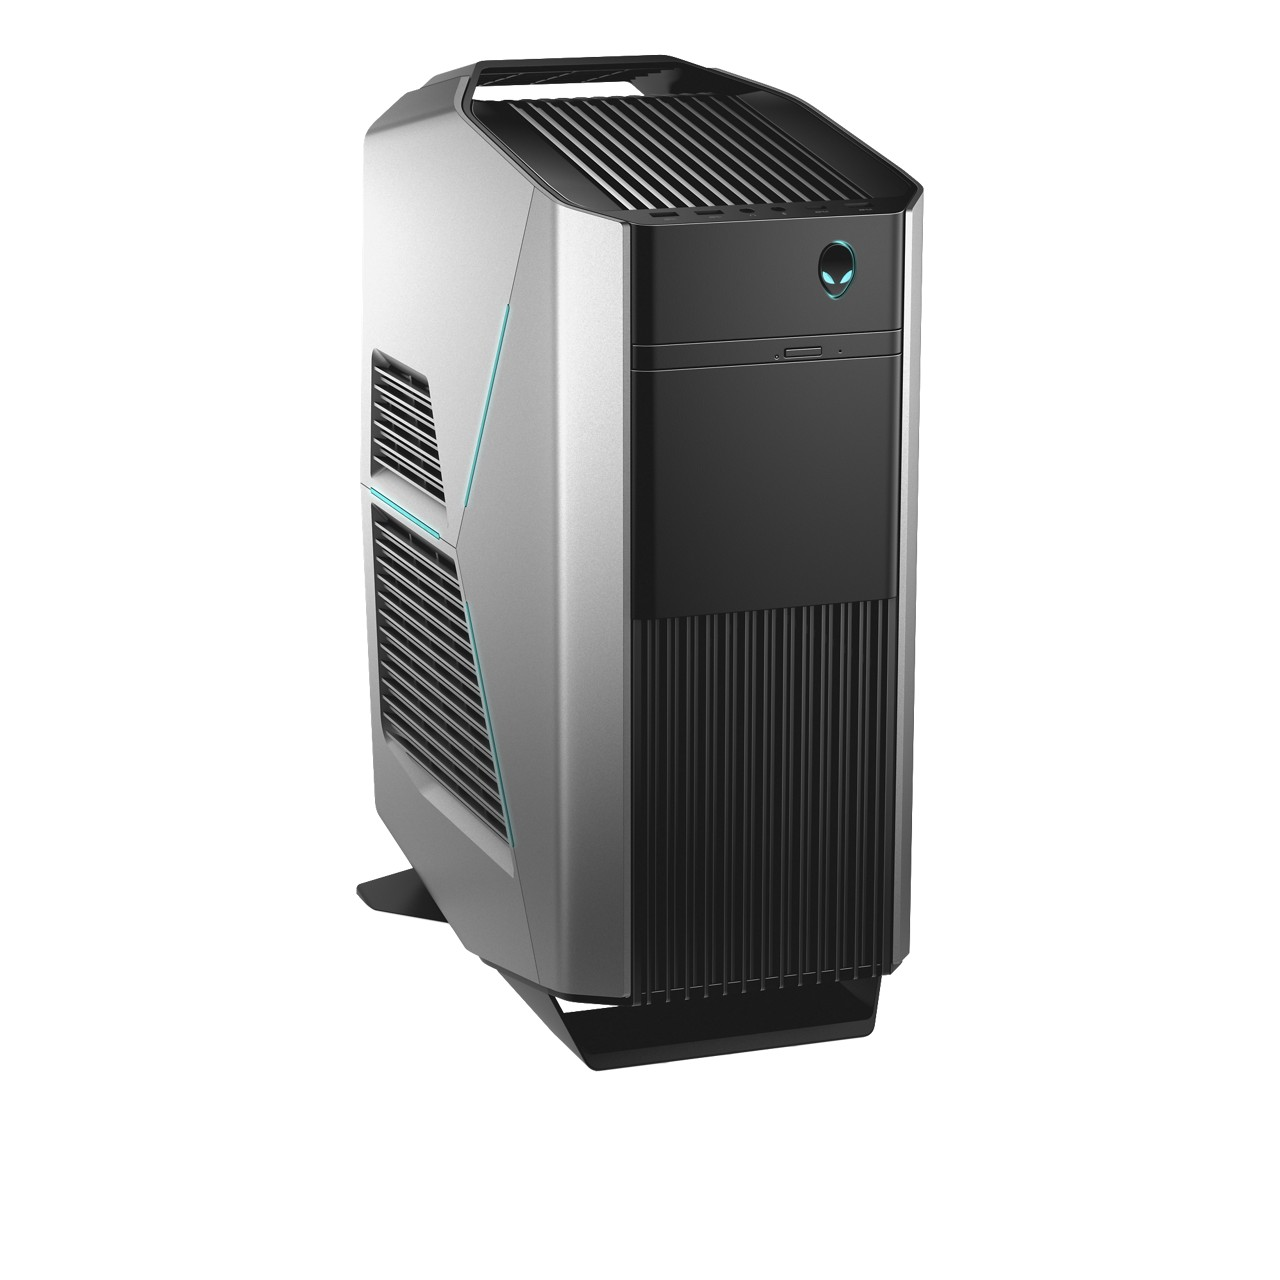 Dell Alienware Aurora R8 Desktop (Hex i5/8GB/256GB SSD & 1TB/6GB Video)